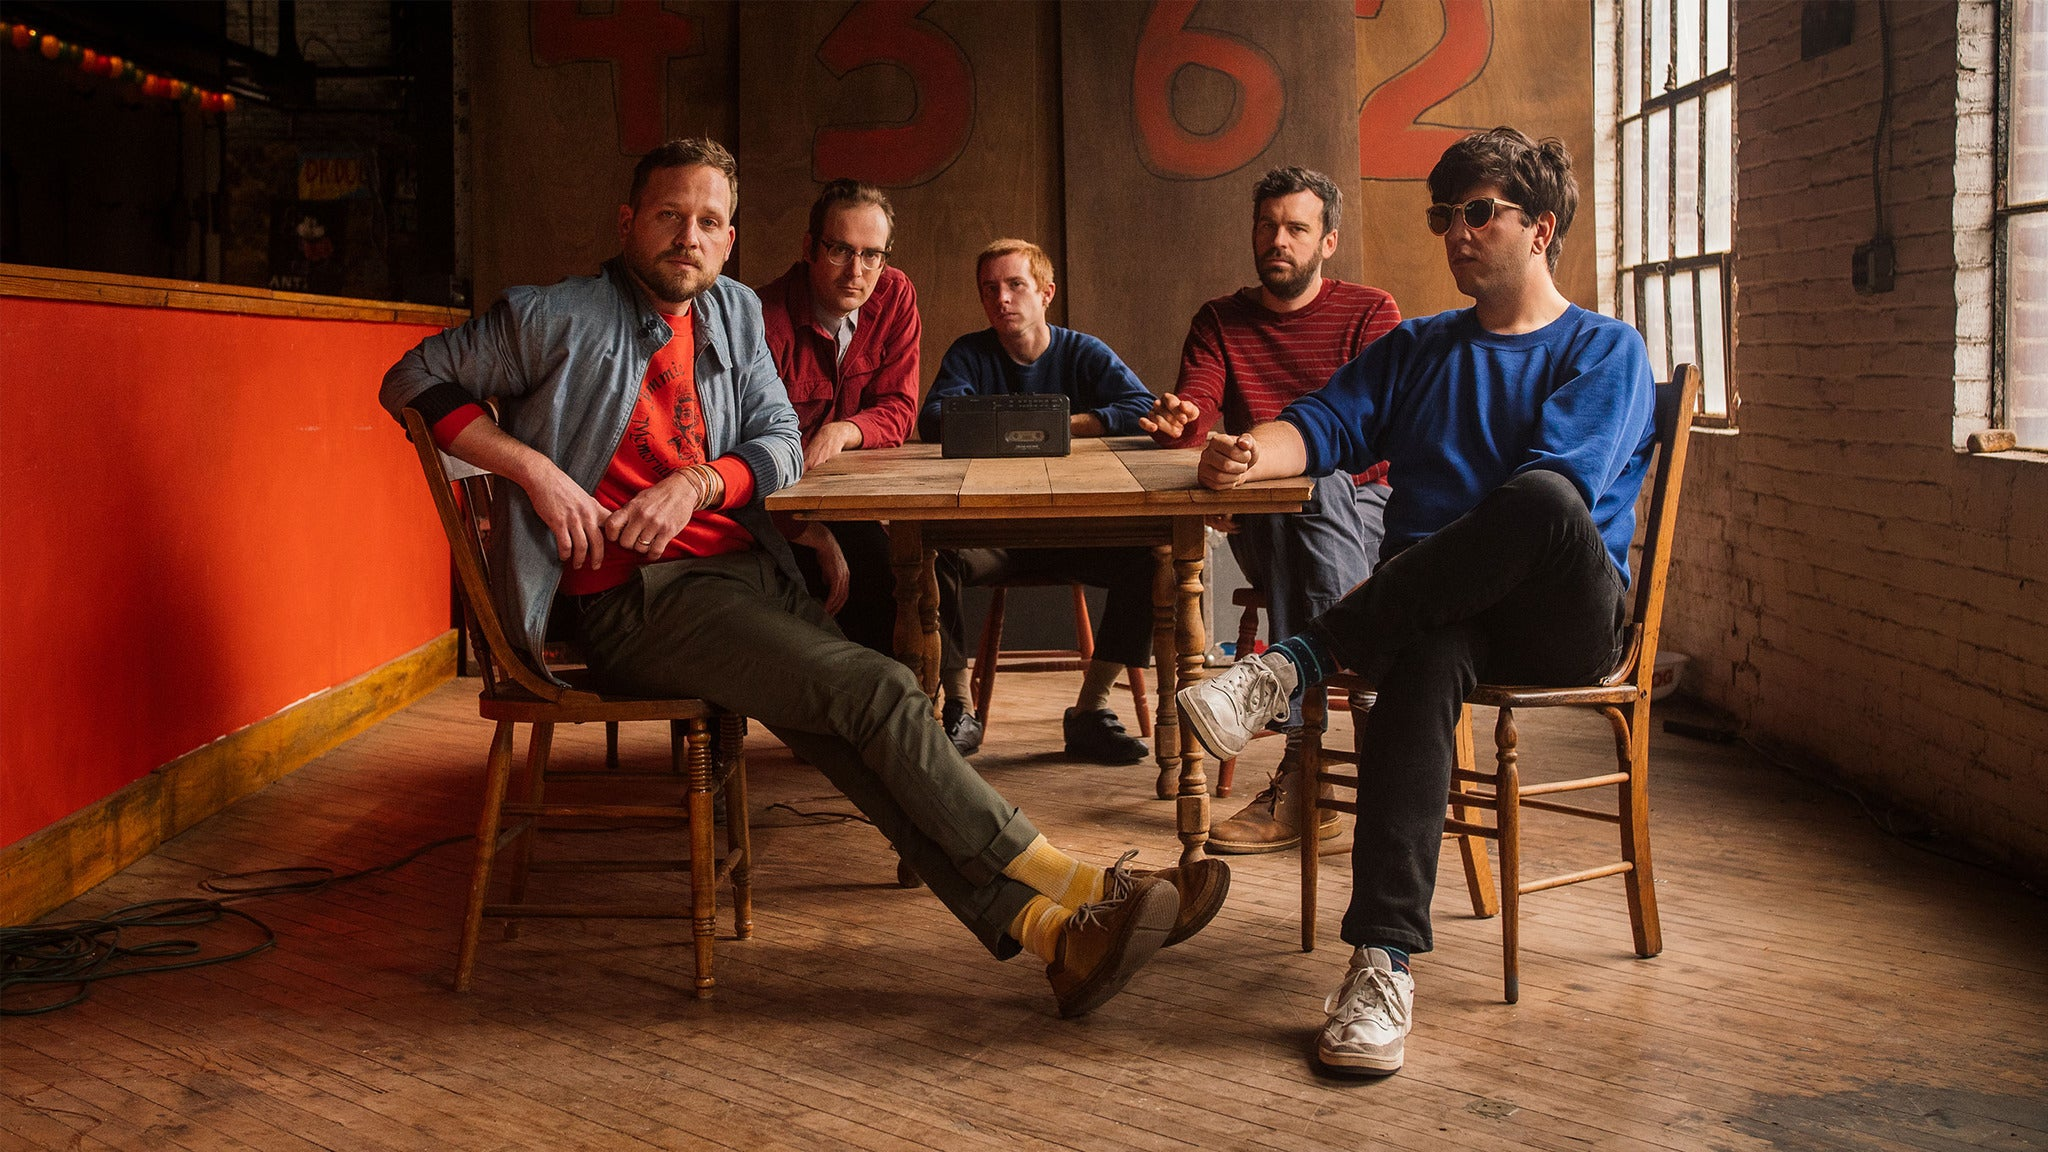 Dr. Dog w/ Sandy Alex G at Ace Hotel Los Angeles - Los Angeles, CA 90015